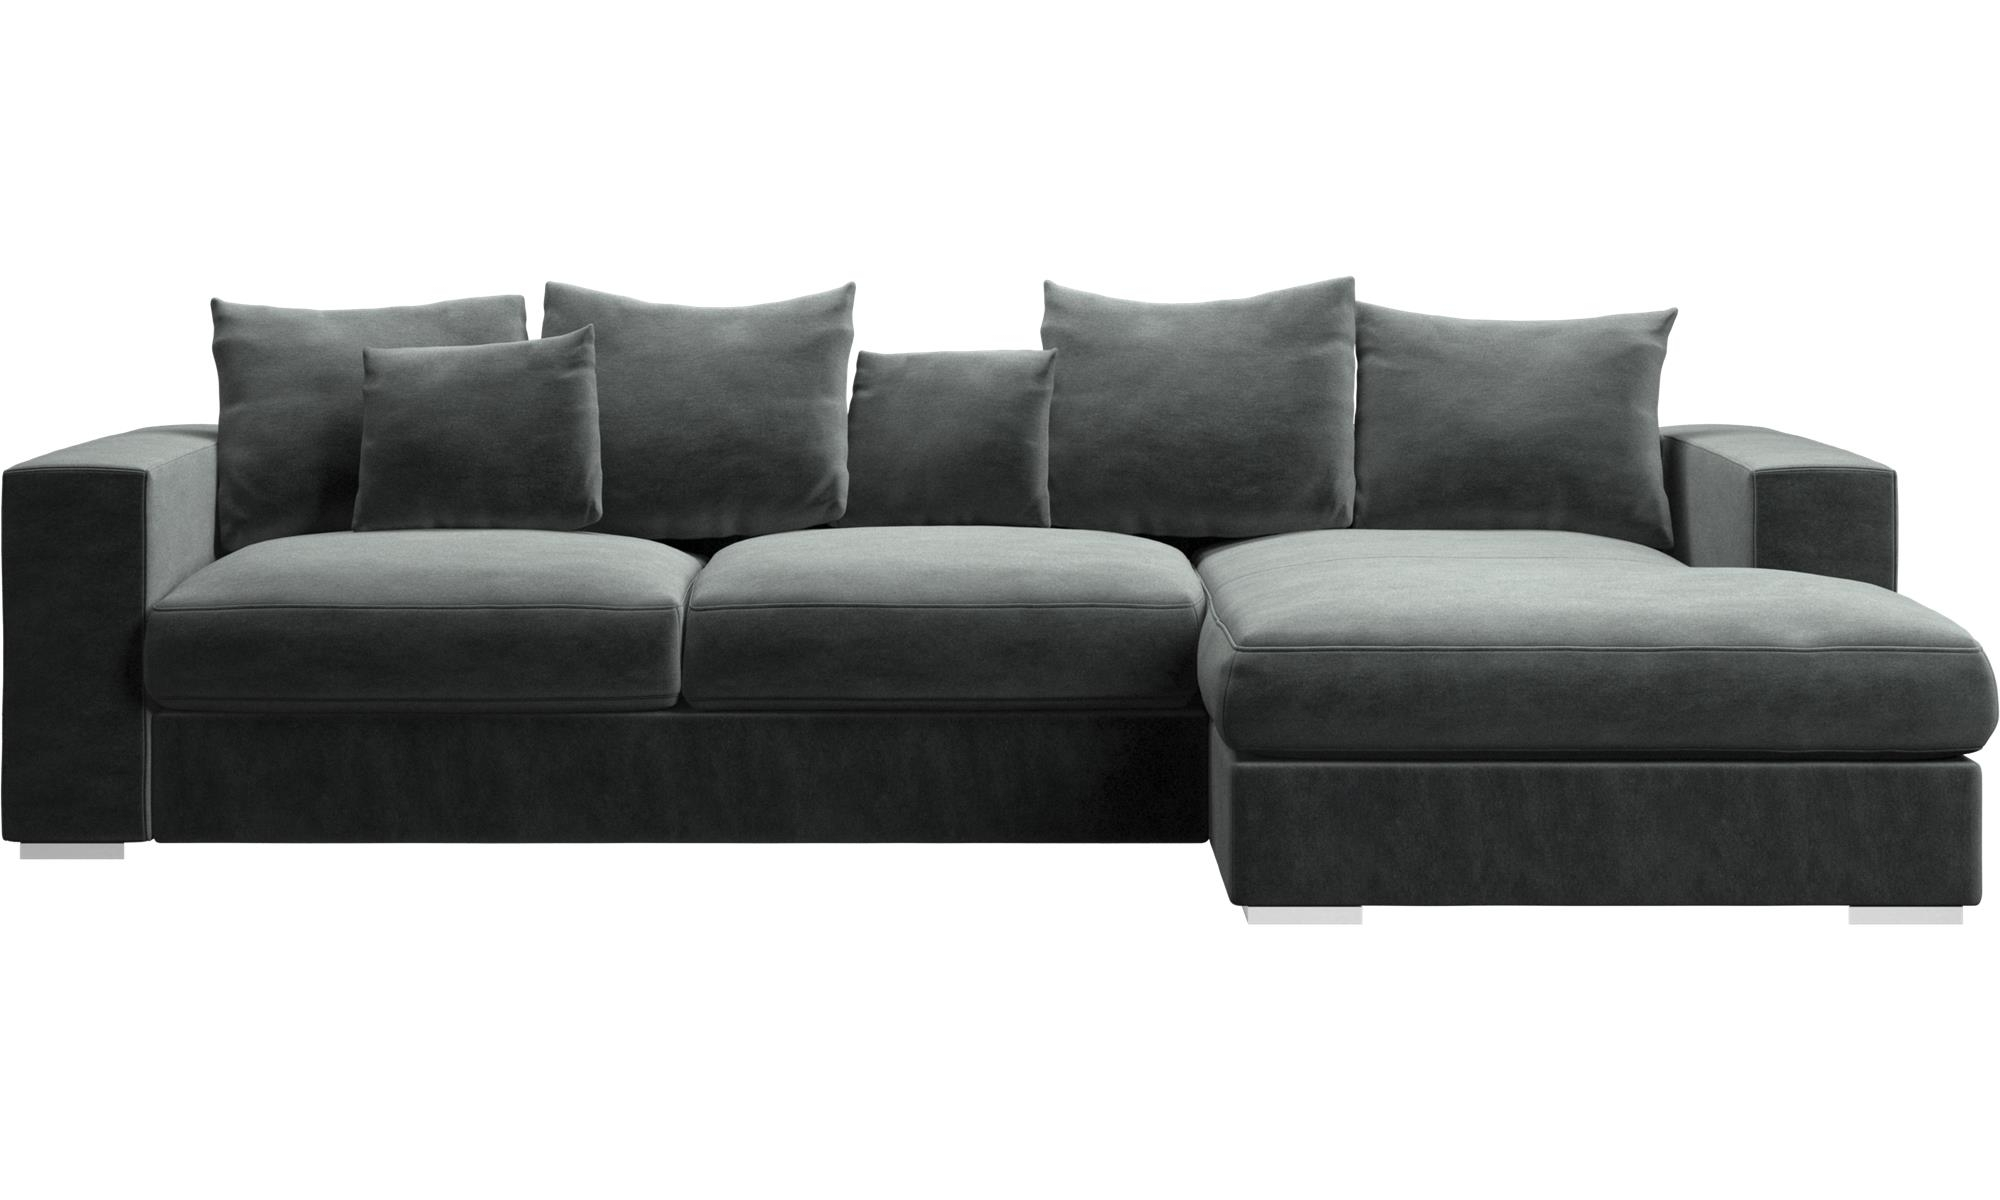 Favorite Chaise Lounge Couches Regarding Chaise Lounge Sofas – Cenova Sofa With Resting Unit – Boconcept (View 11 of 15)